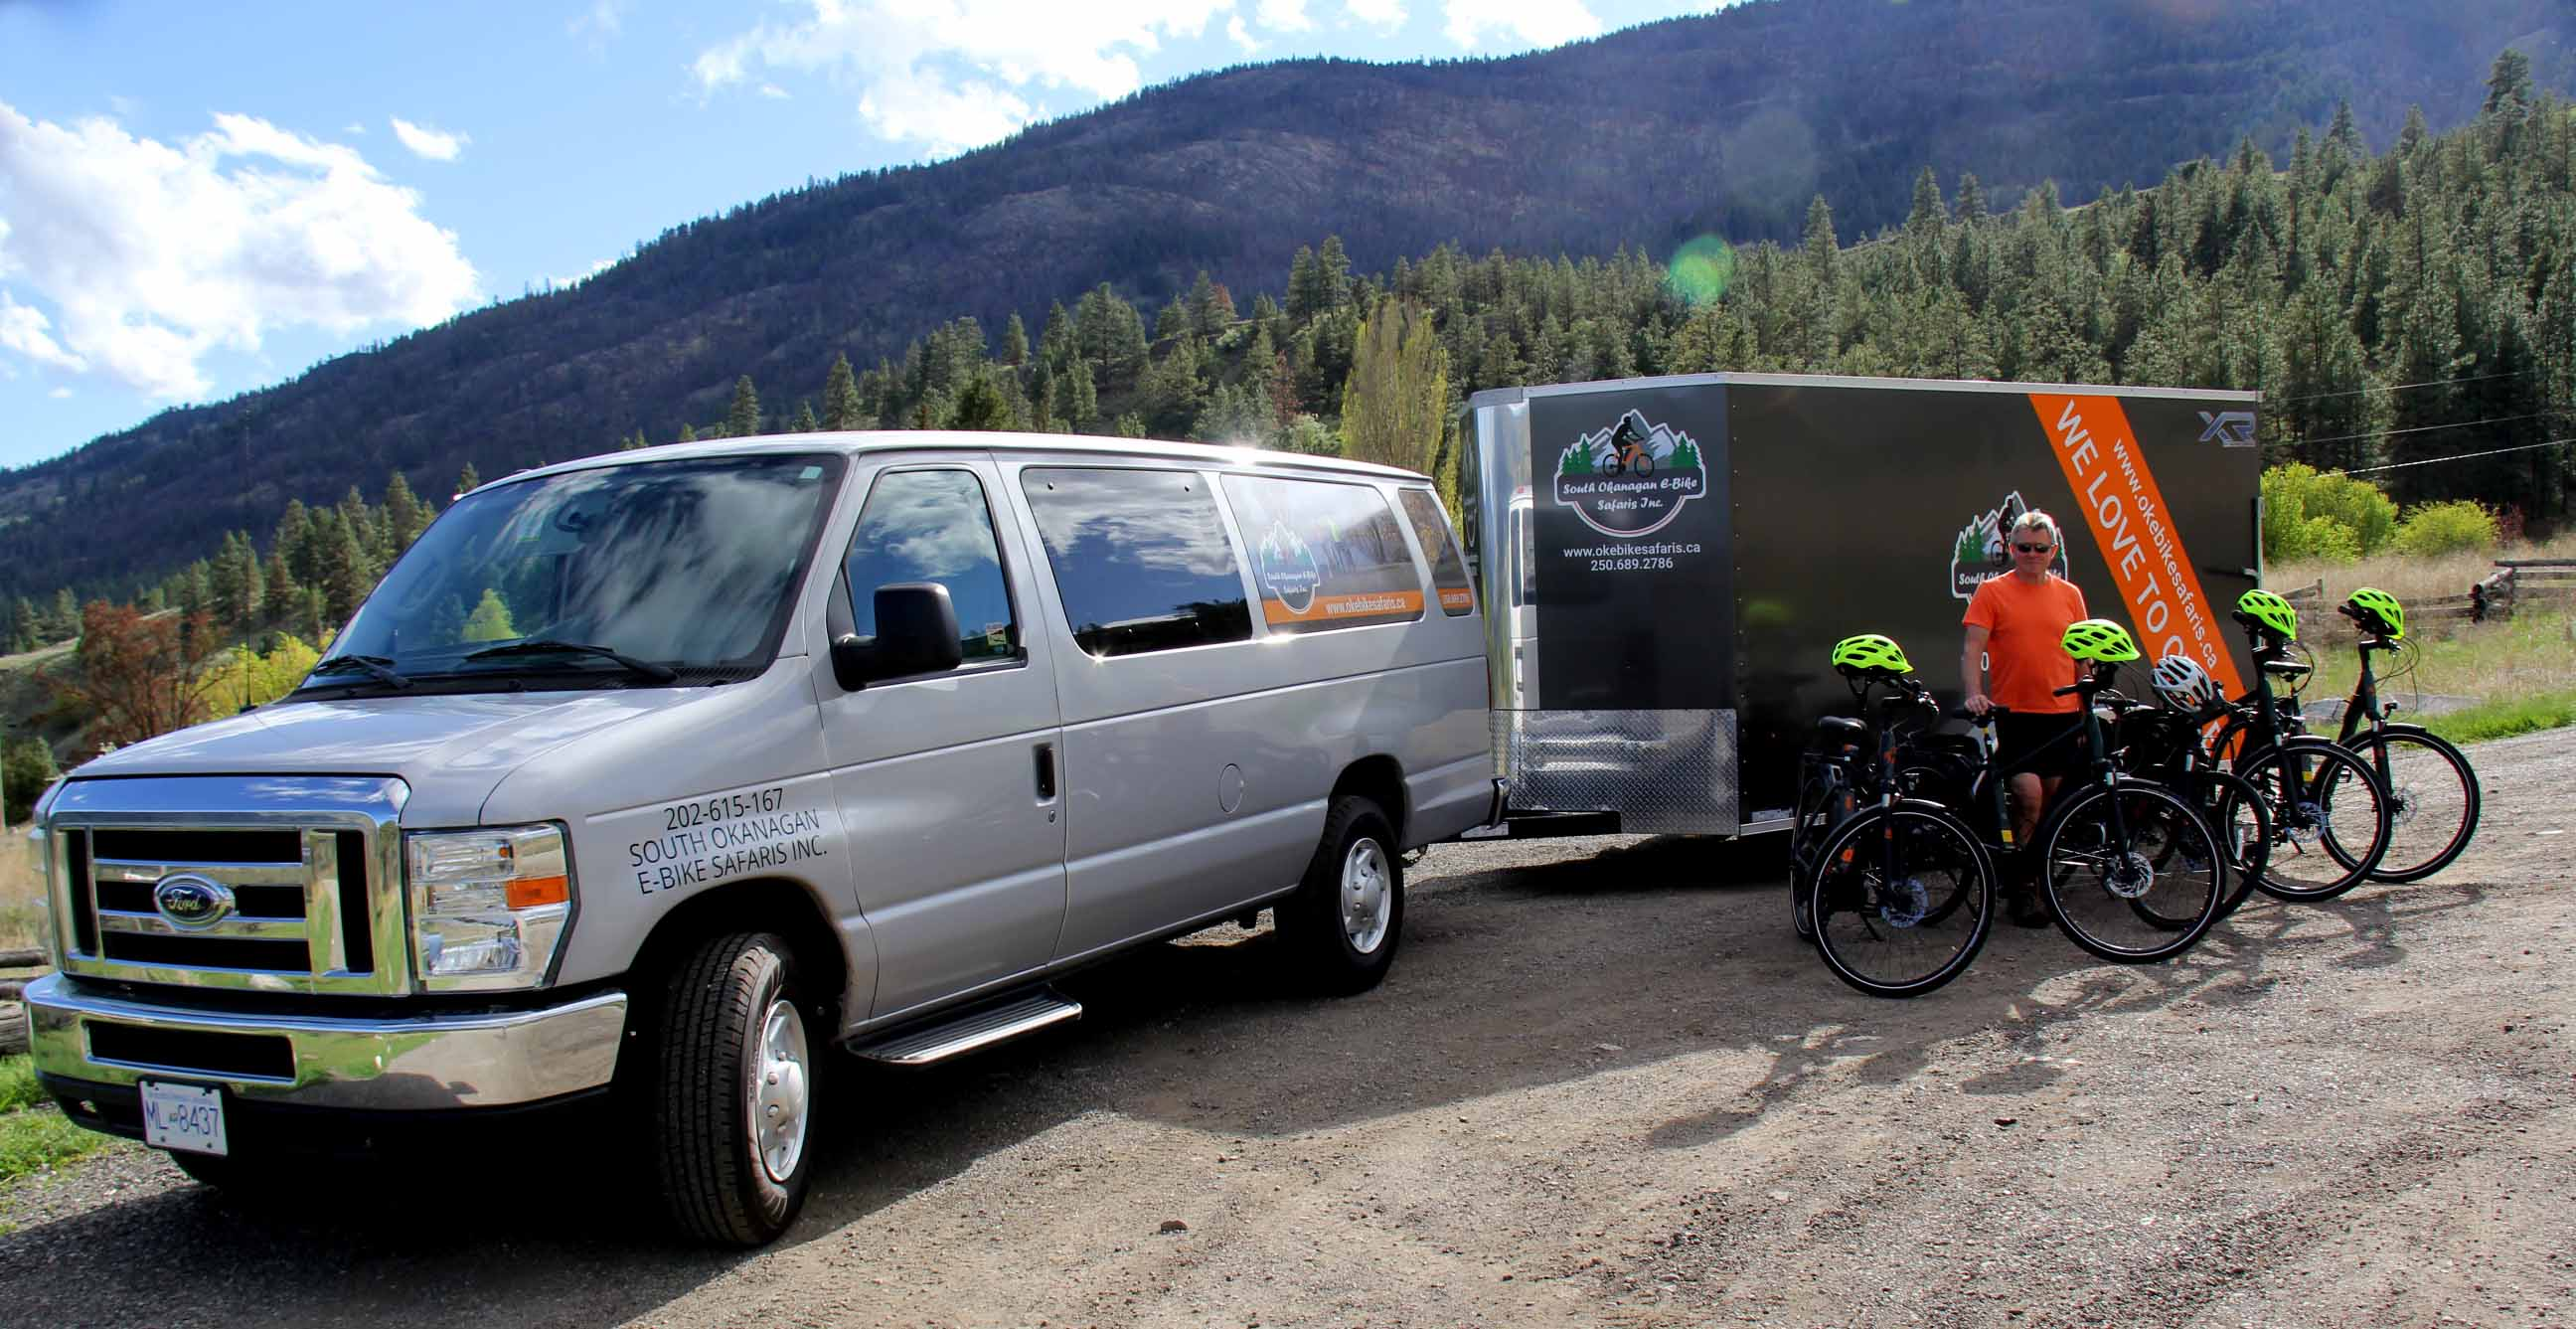 South Okanagan e-Bike tours - bike drop-off